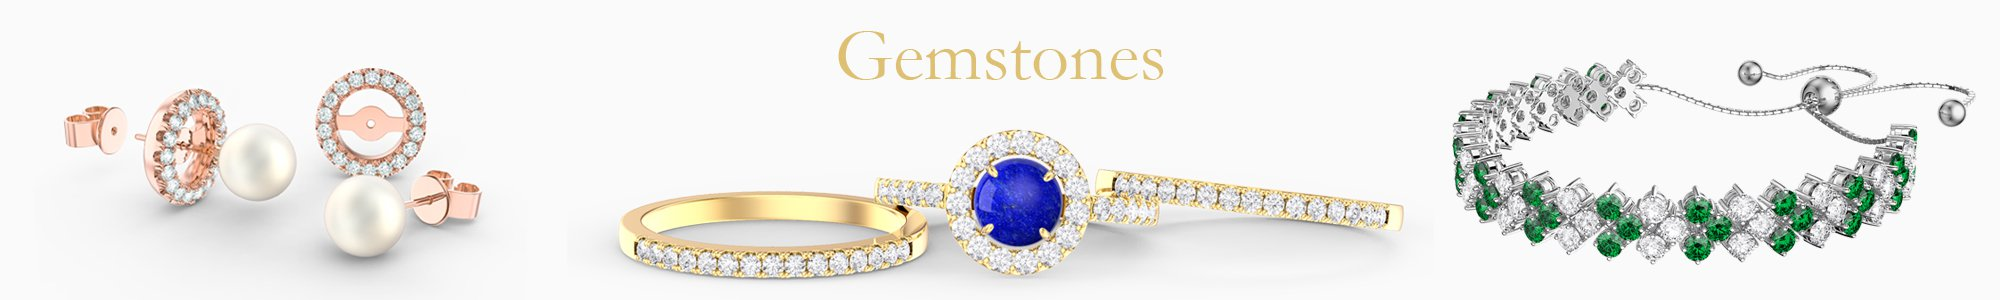 Gemstone Jewelry - from precious gemstones to Diamonds. From Silver to 18K Gold.